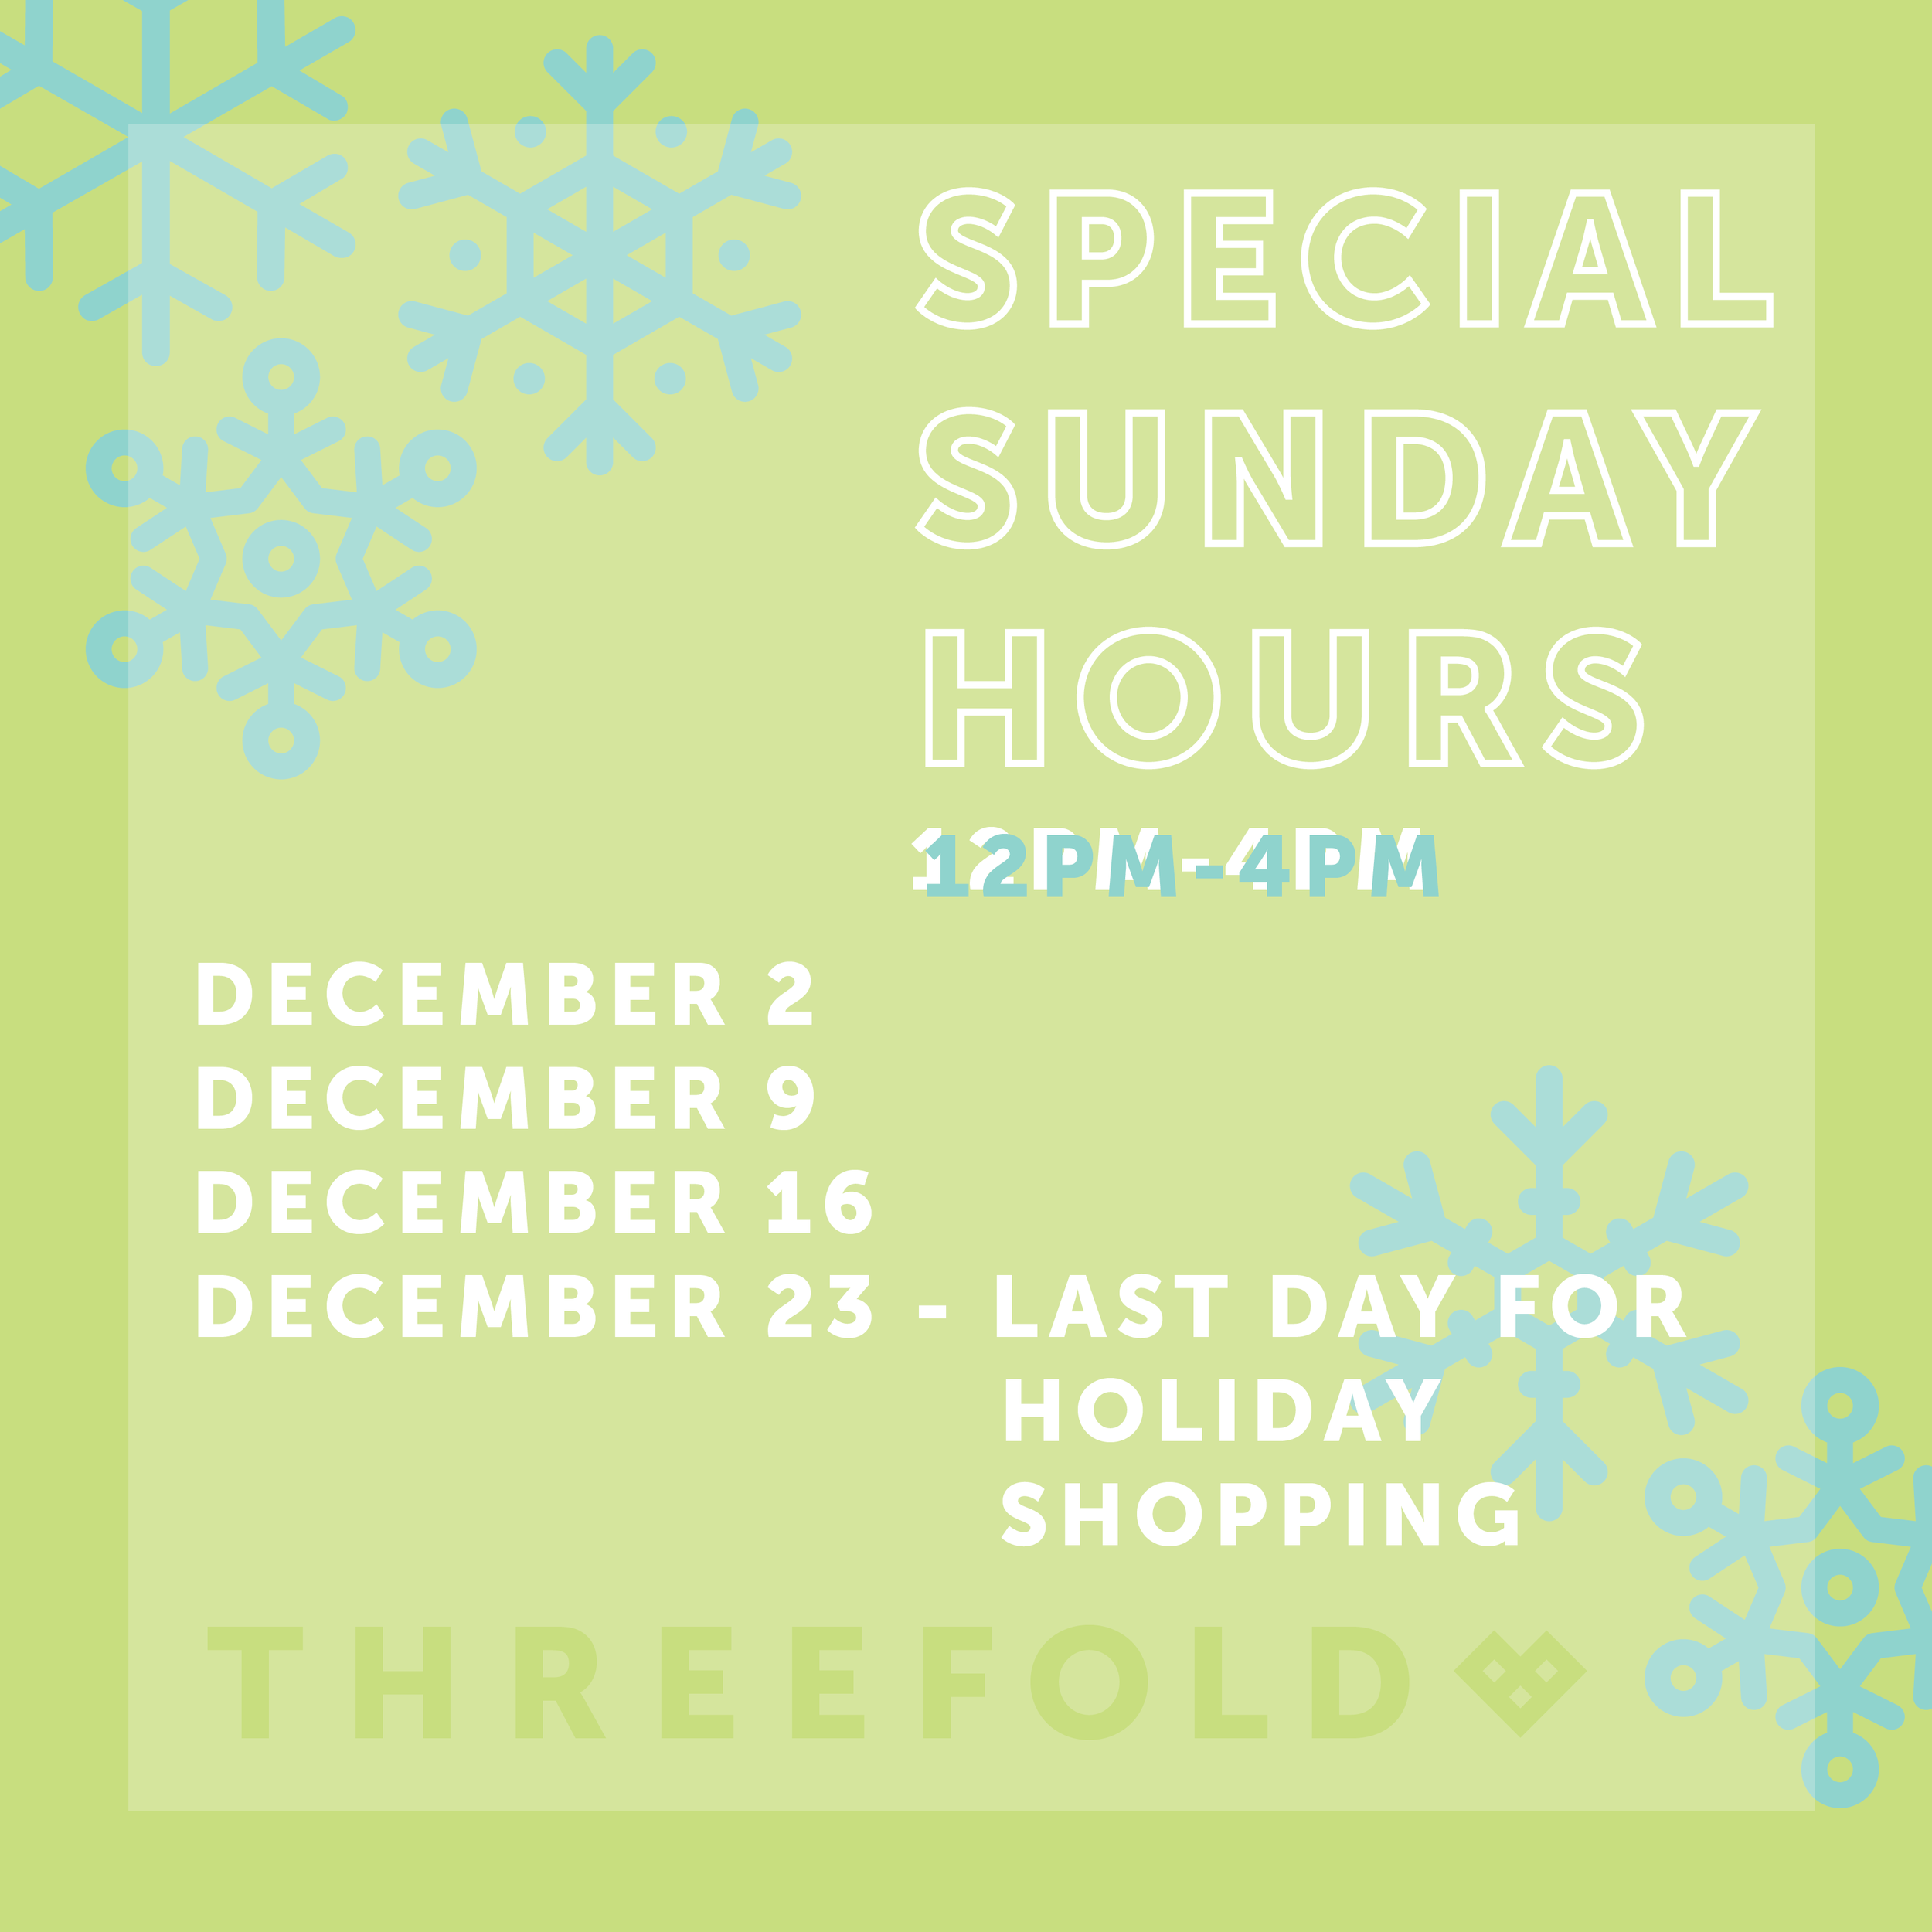 holidayhours-01.png